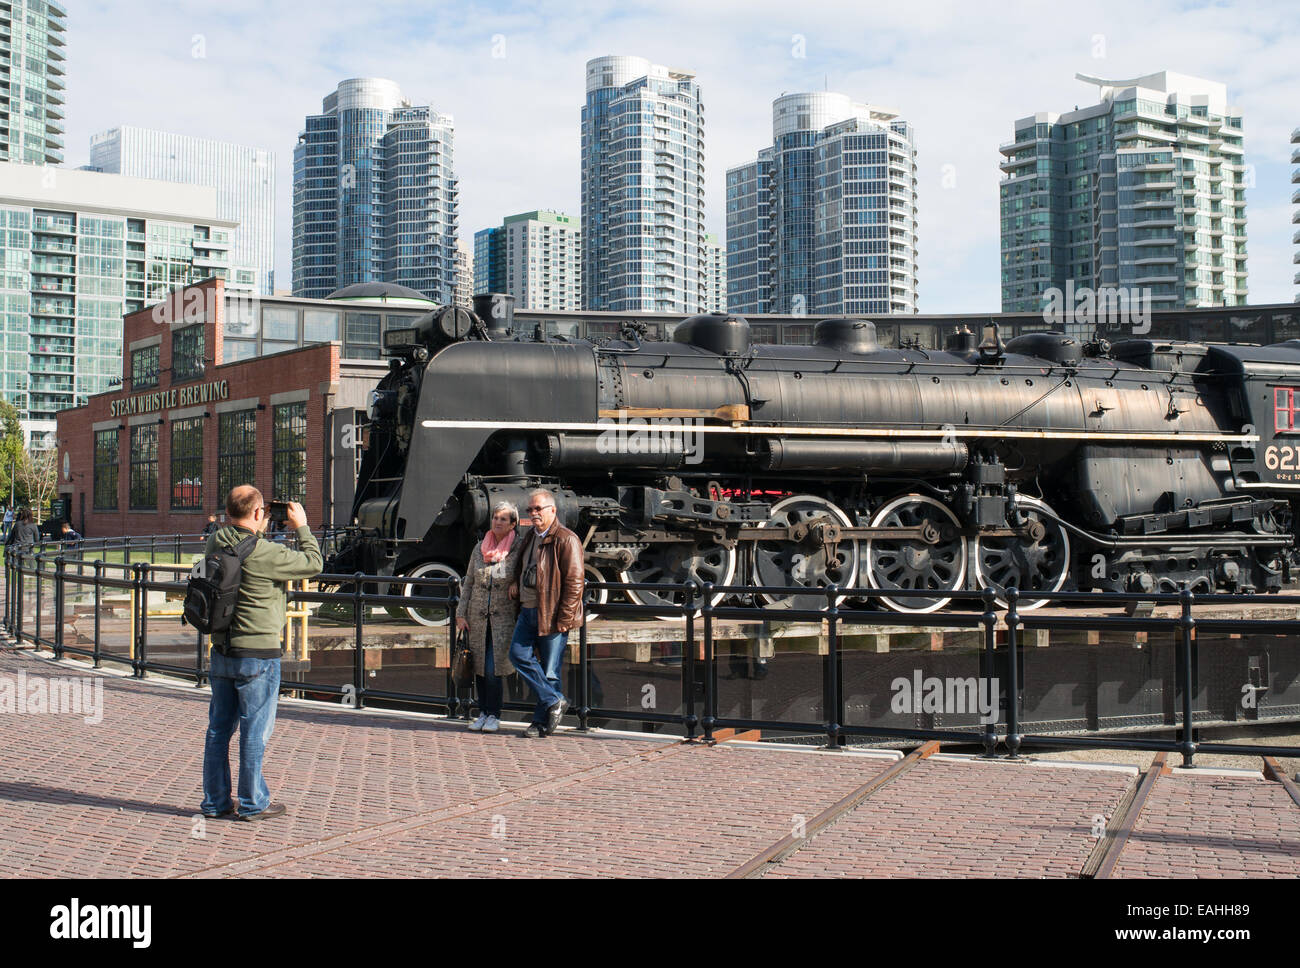 Couple being photographed before steam train 6213 on turntable at John Street Roundhouse, Toronto, Ontario, Canada - Stock Image